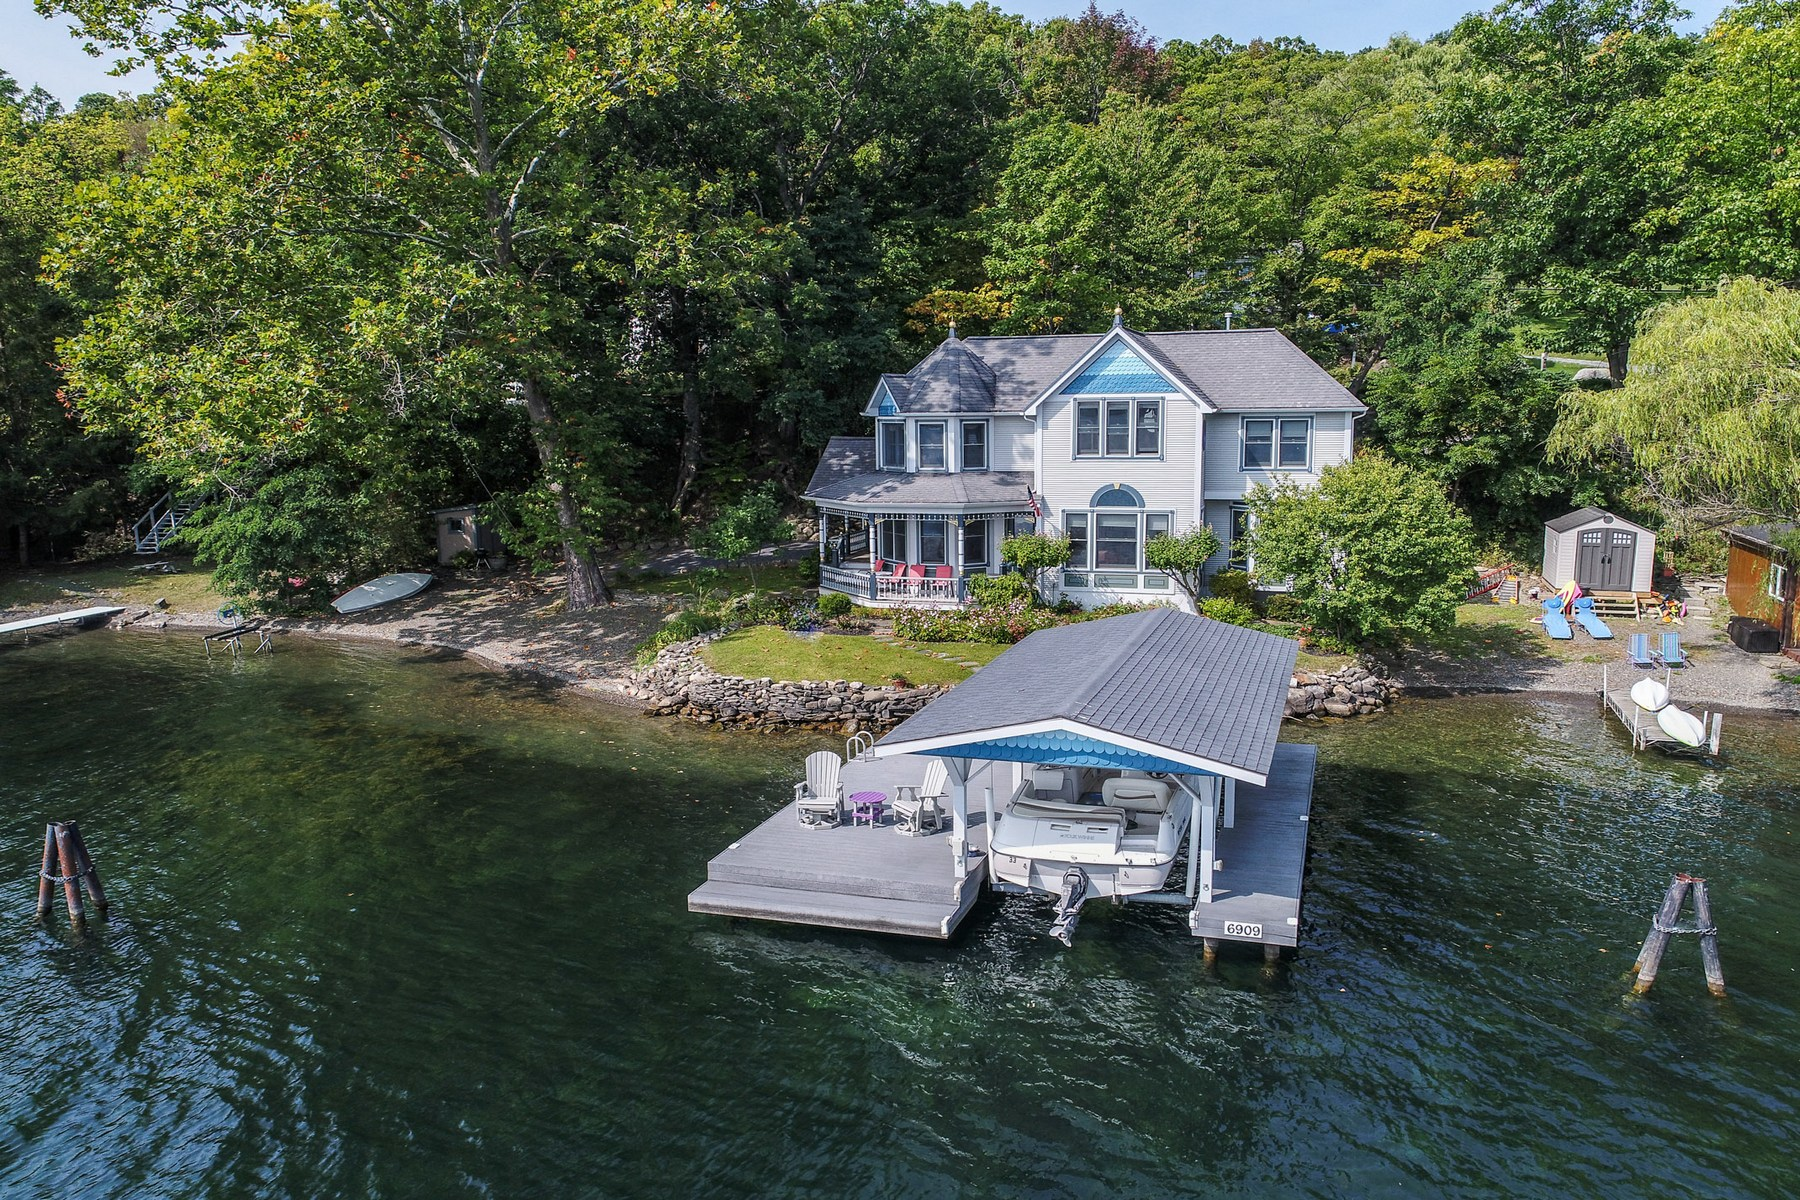 Single Family Home for Sale at Lovely Painted Lady on Keuka Lake 6909 E Bluff Dr Penn Yan, New York 14527 United States